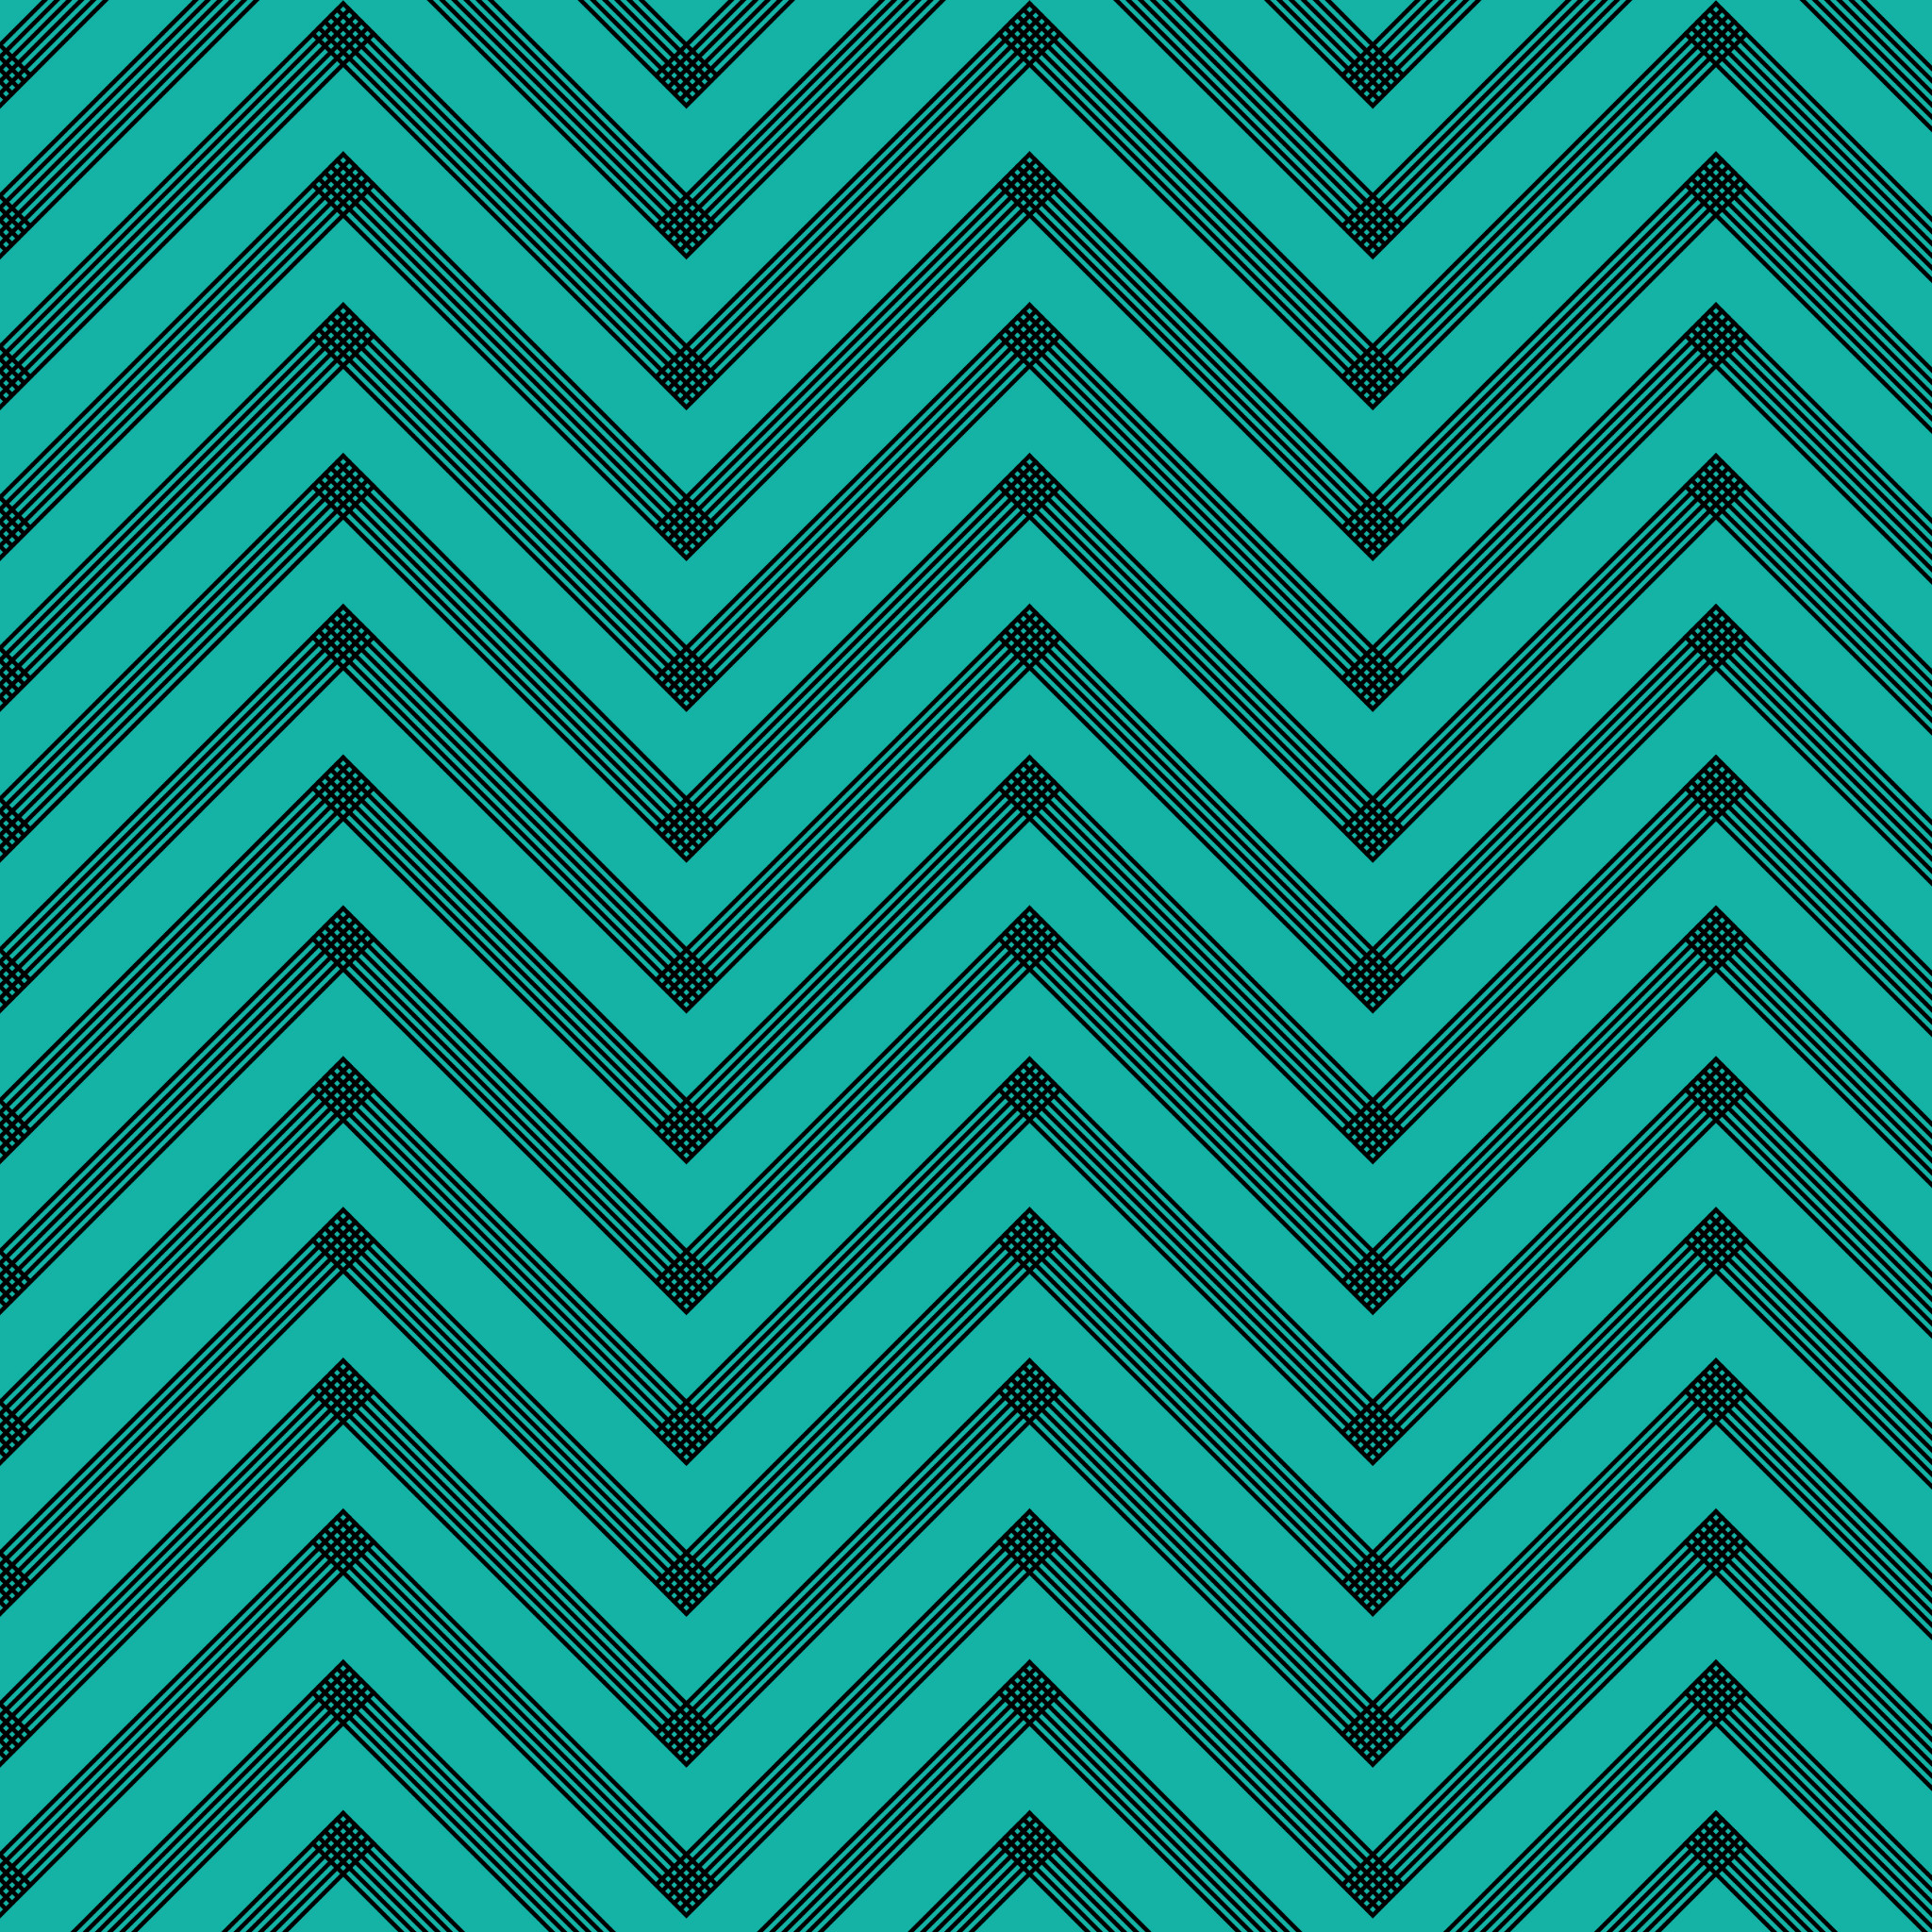 background tumblr pattern sketchy wide chevron zig zag 2048x2048